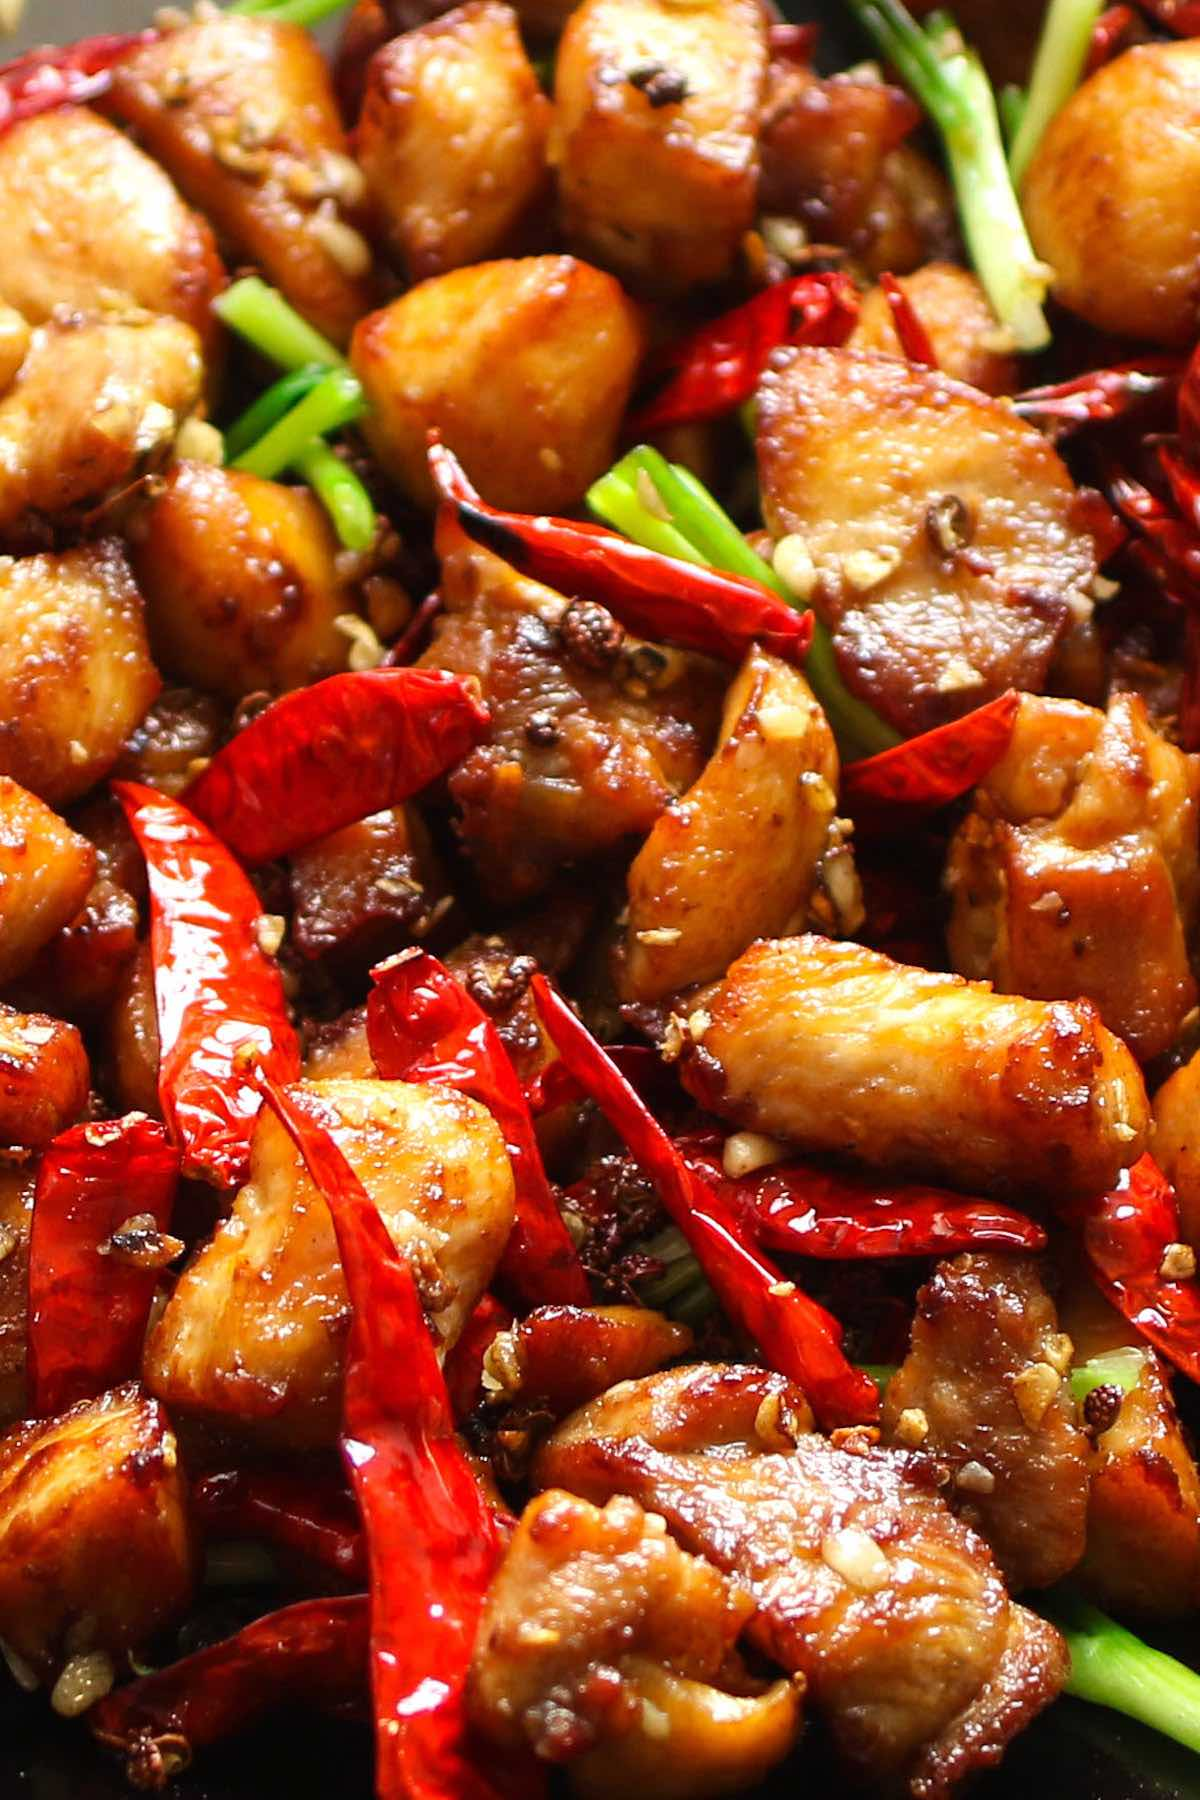 Szechuan Chicken is an easy Chinese dish with the perfect combination of spicy, salty and sweet flavors. This Szechuan style chicken recipe tastes like your favorite Chinese takeout and is ready in less time. The best part, you can control the spiciness to make it mild or EXTRA HOT!